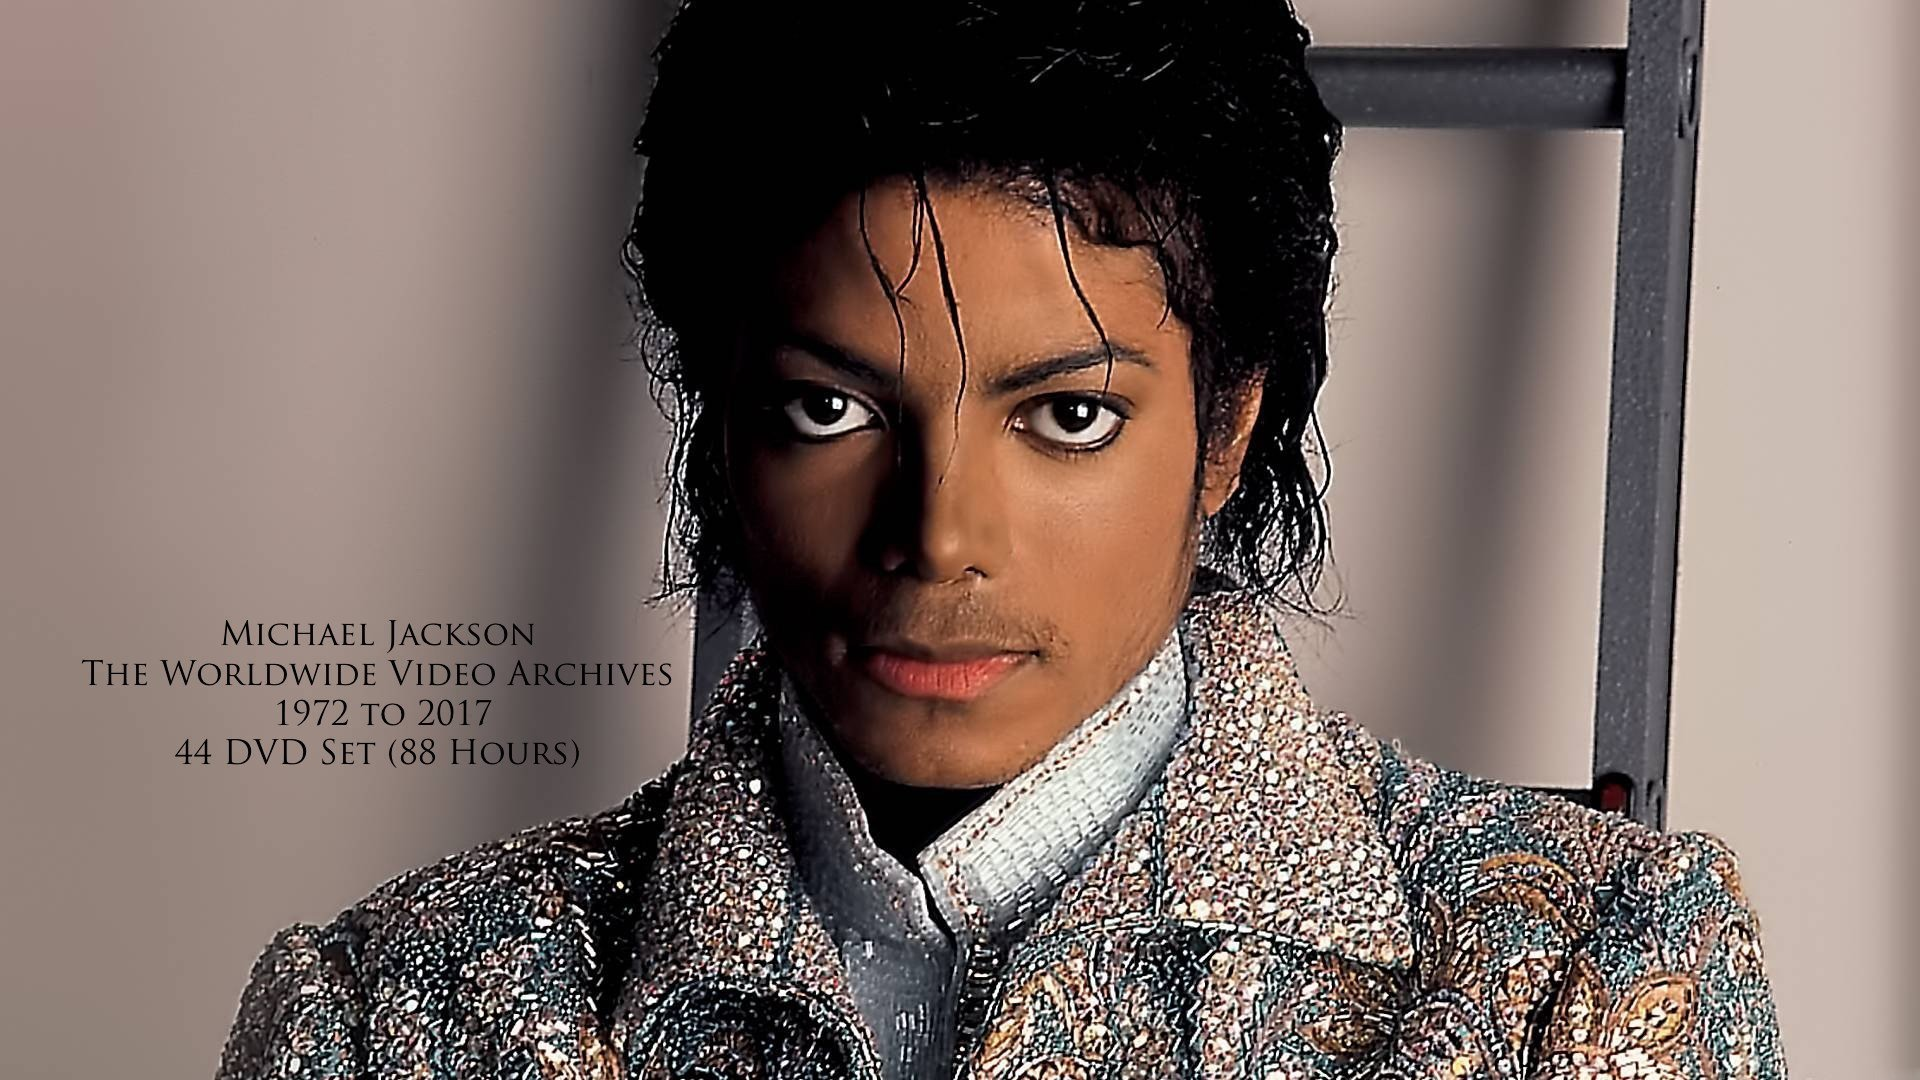 Michael Jackson The Worldwide Video Archives 1969 to 2018 45 DVD Set (90  Hours)